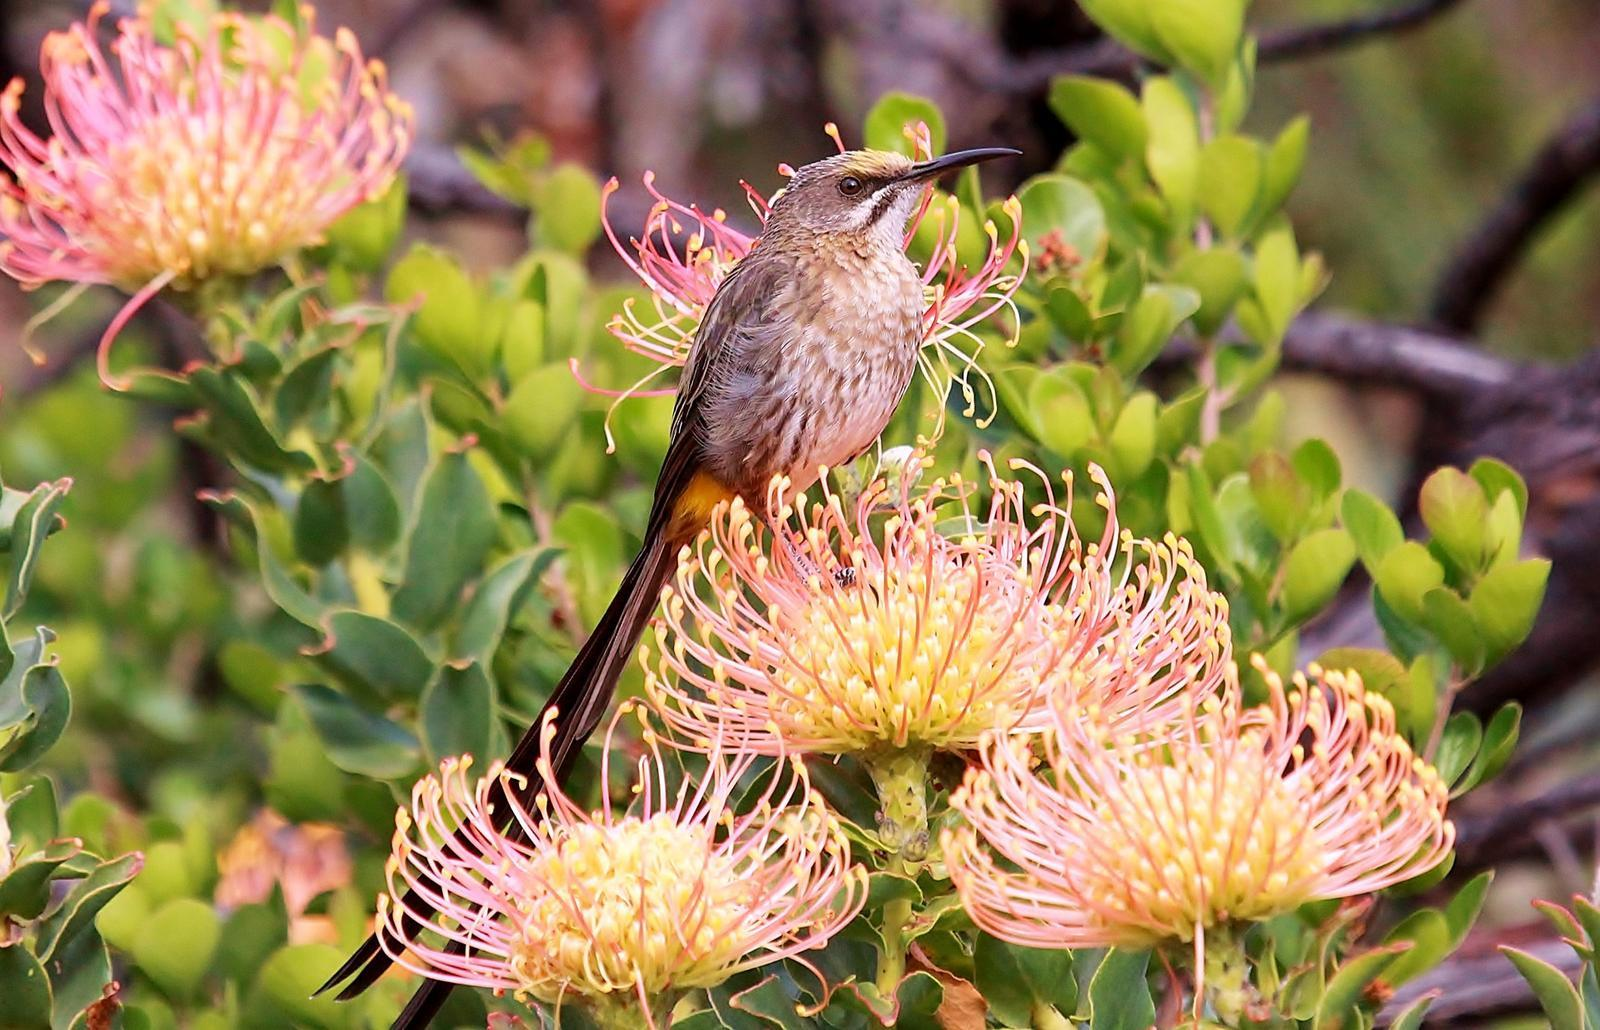 Cape Sugarbird Photo by Matthew McCluskey